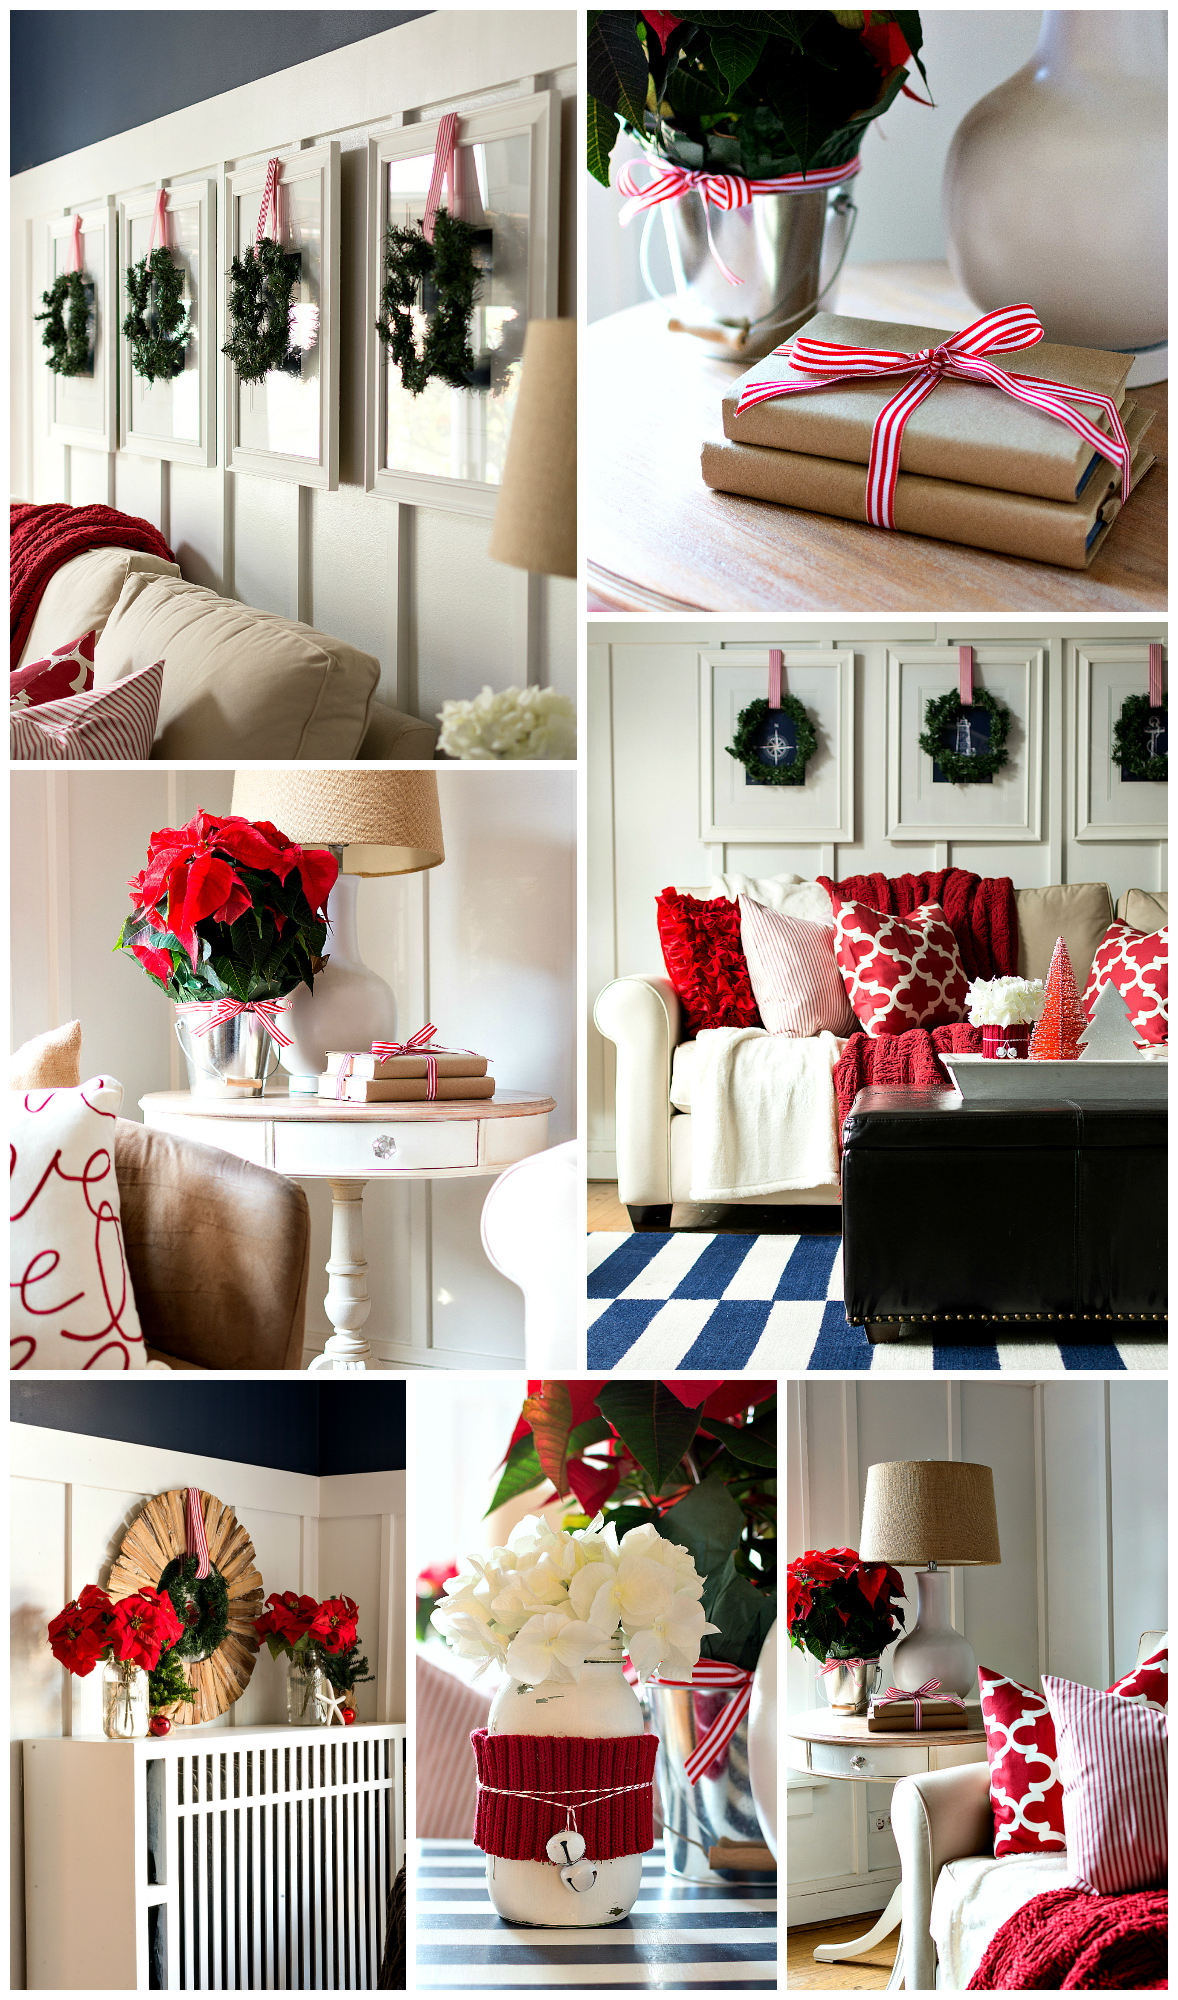 Red and white christmas decorations - Red White Christmas Decorating Ideas